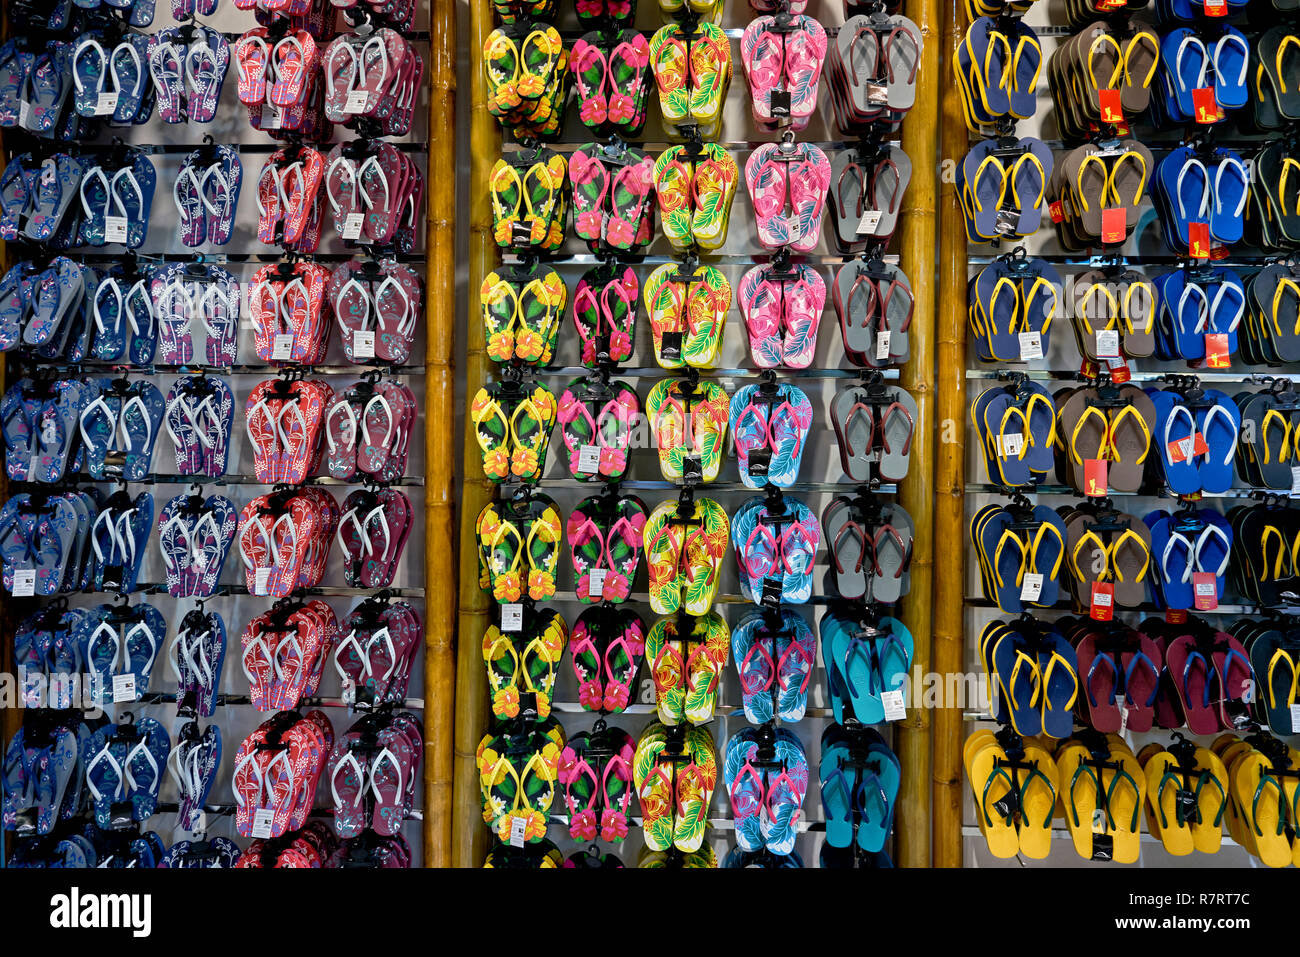 Flip flops. Flip flop shoes for sale - Stock Image